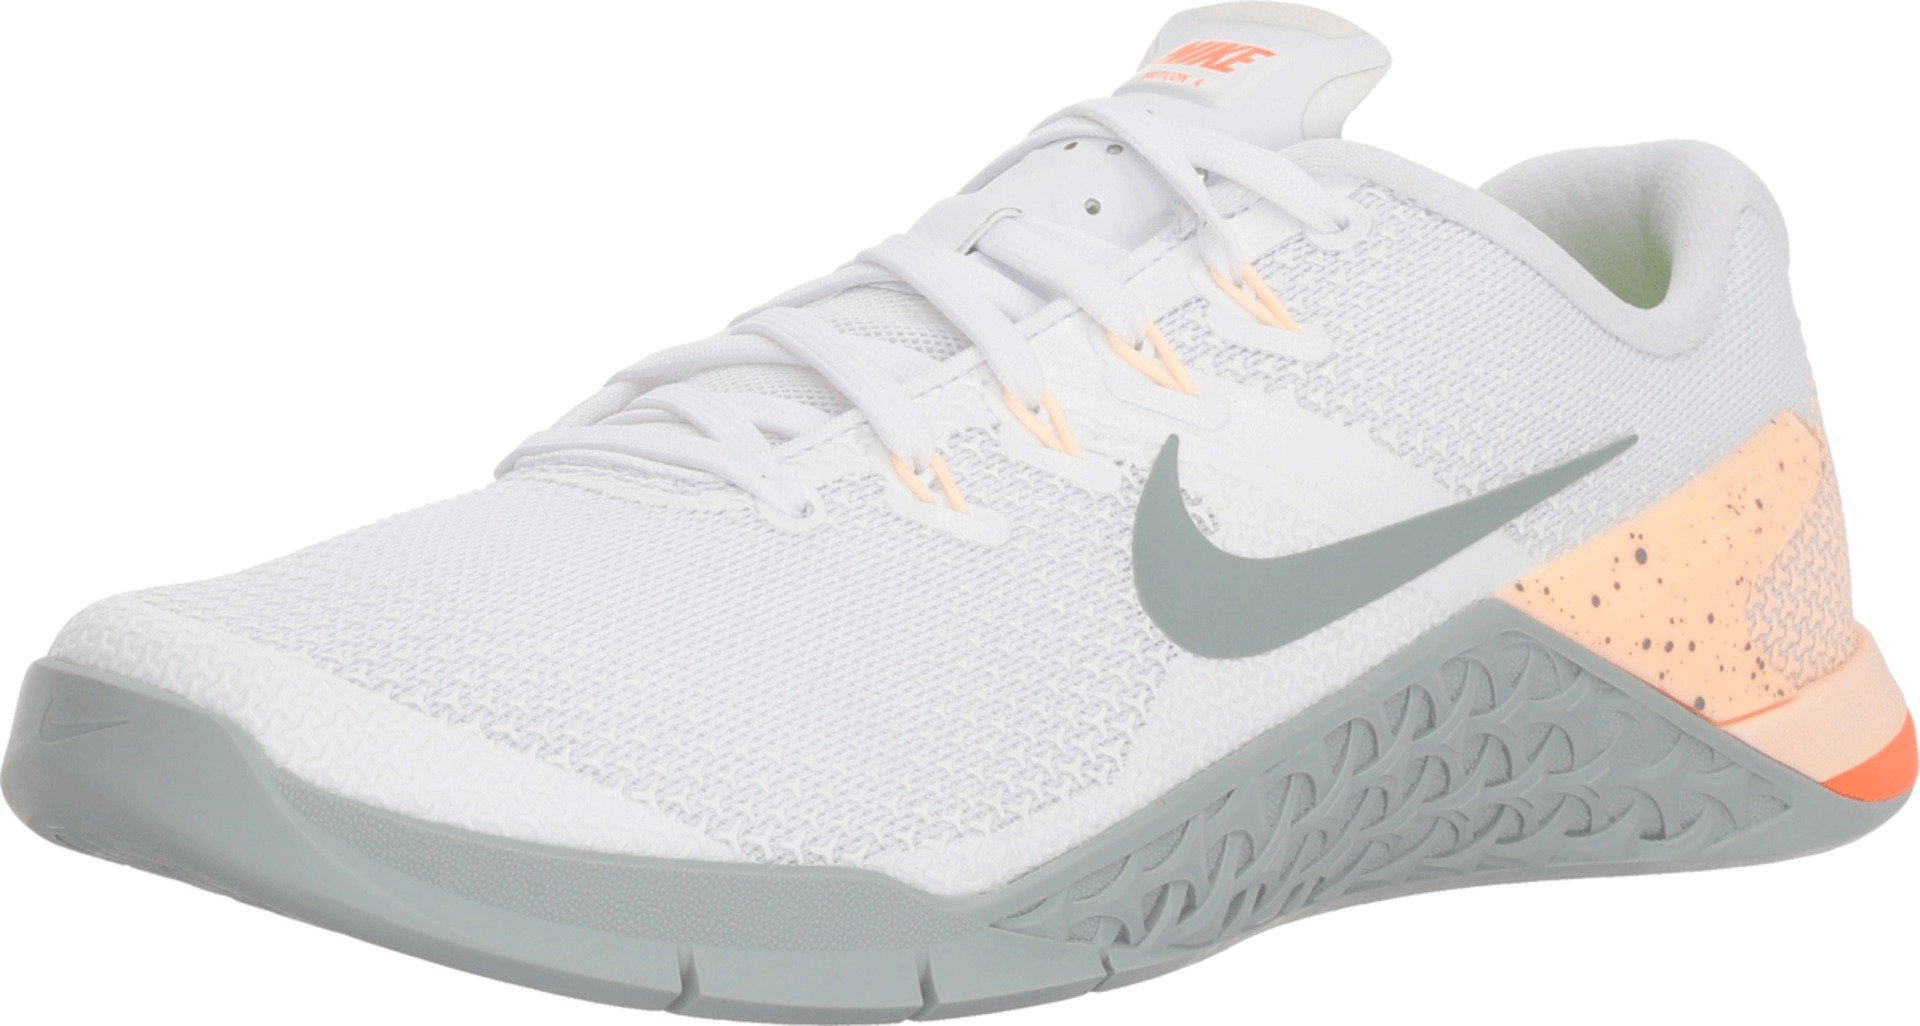 9d77d4e100b Galleon - Nike Women s Metcon 4 Training Shoes (11